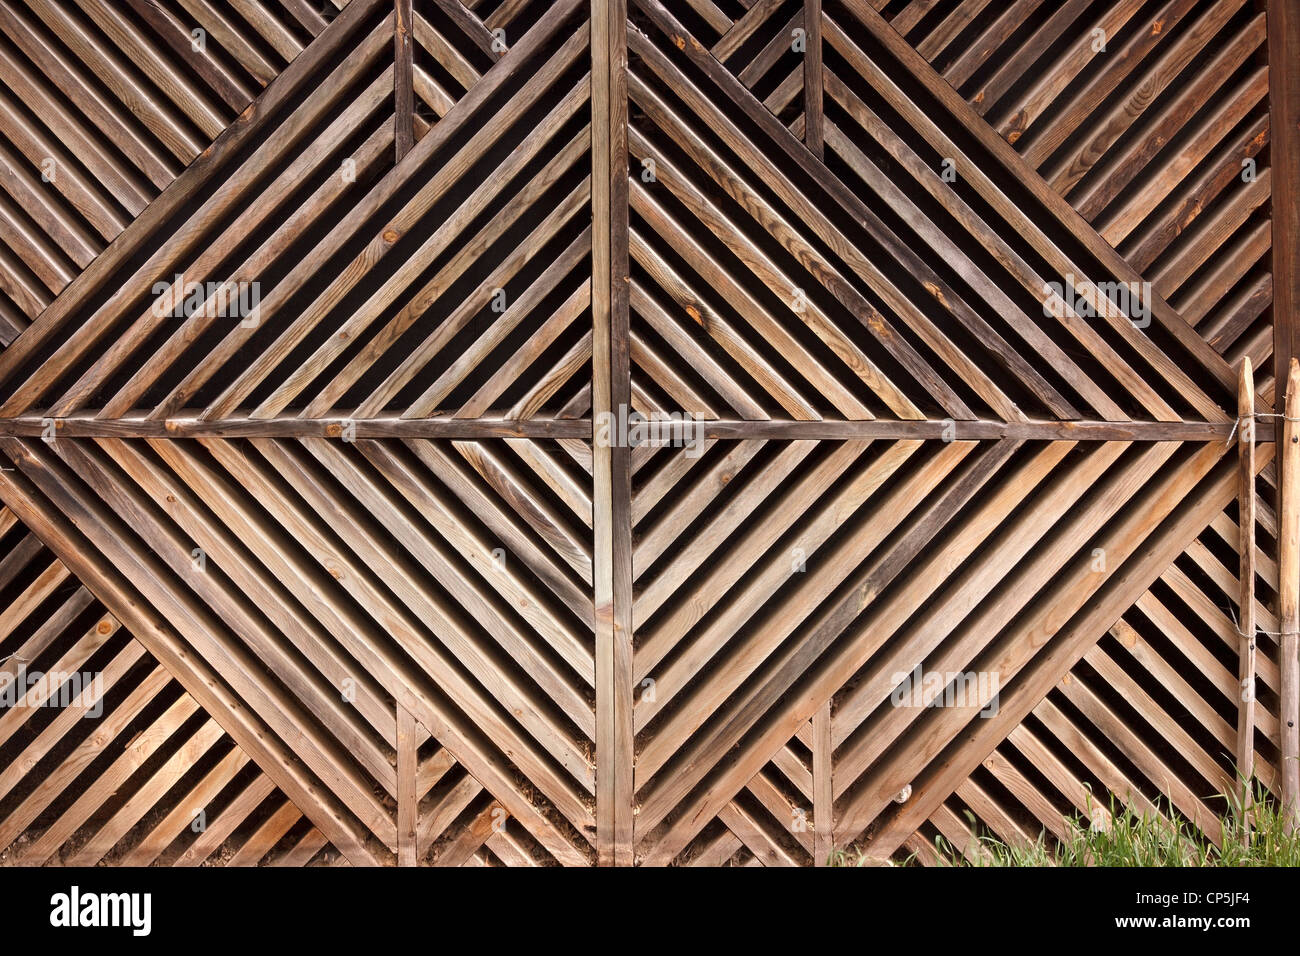 Decorative Wood Screens ~ Decorative slatted wooden screen panels on utility